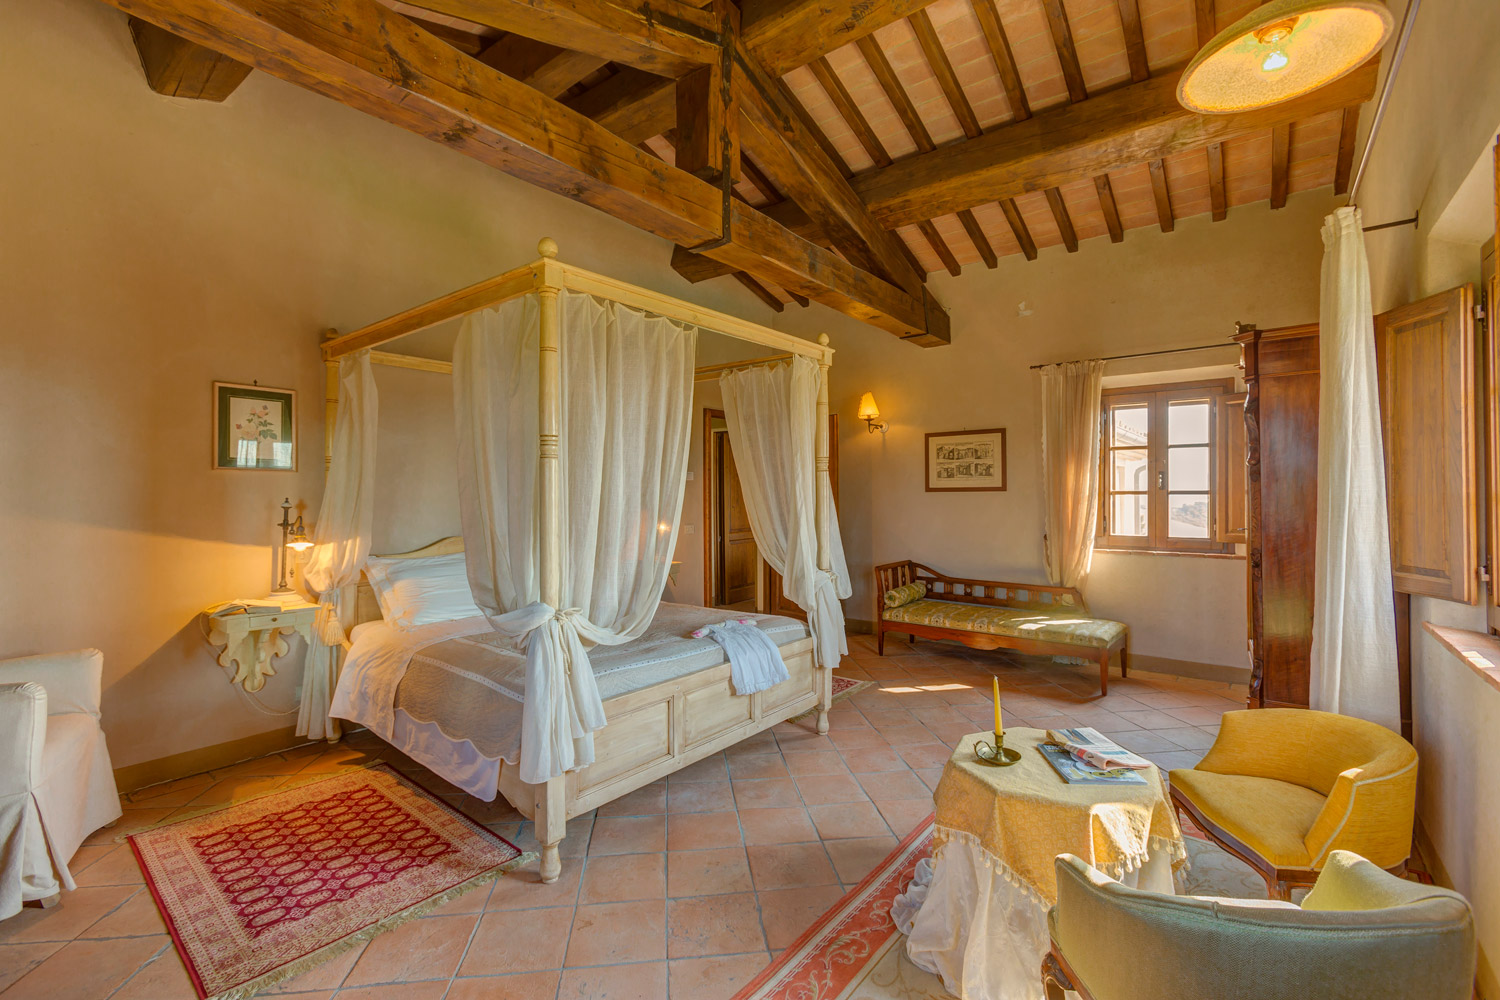 Matrimonio Di Lusso Toscana : Luxury room in tuscany with view of the castle